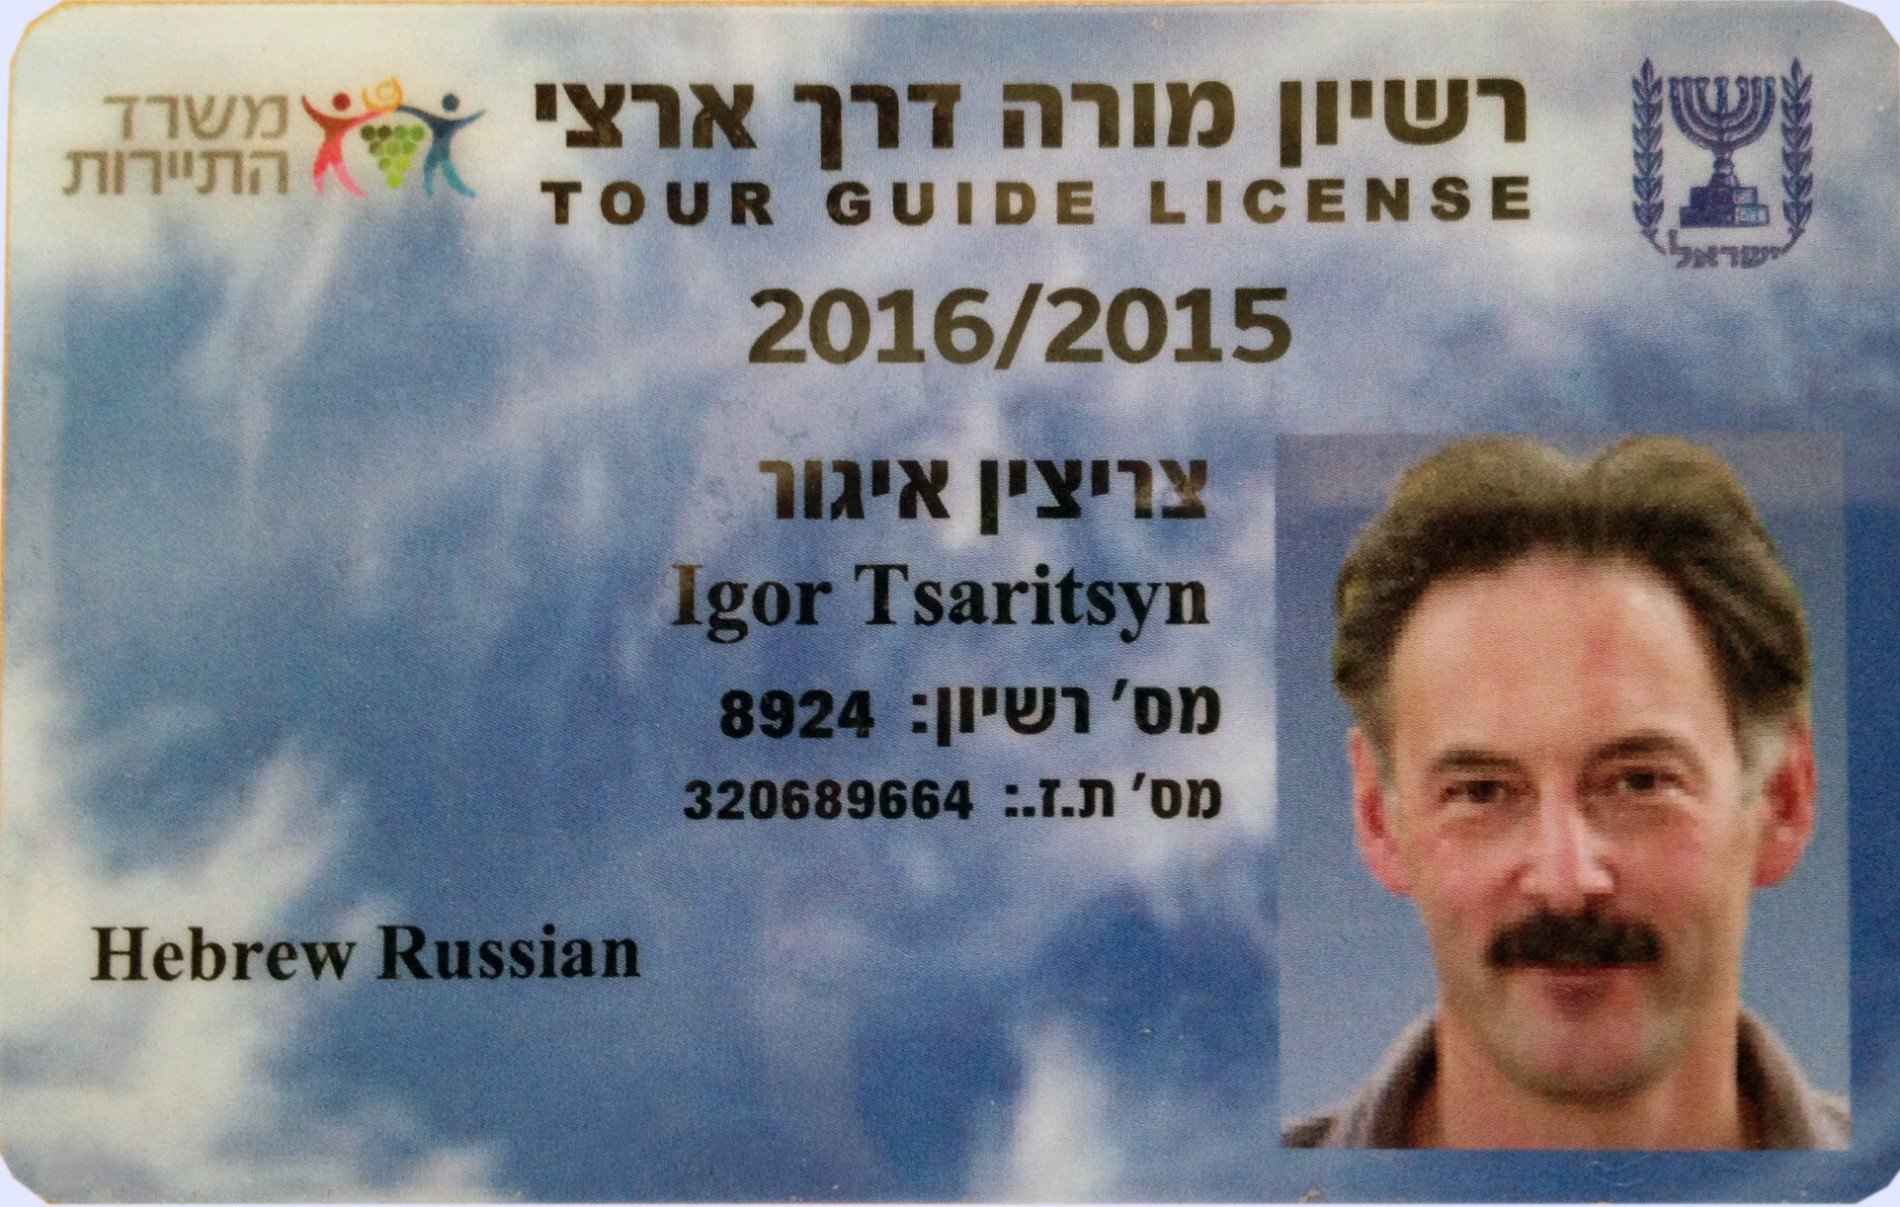 Tour Guide License 2015-2016